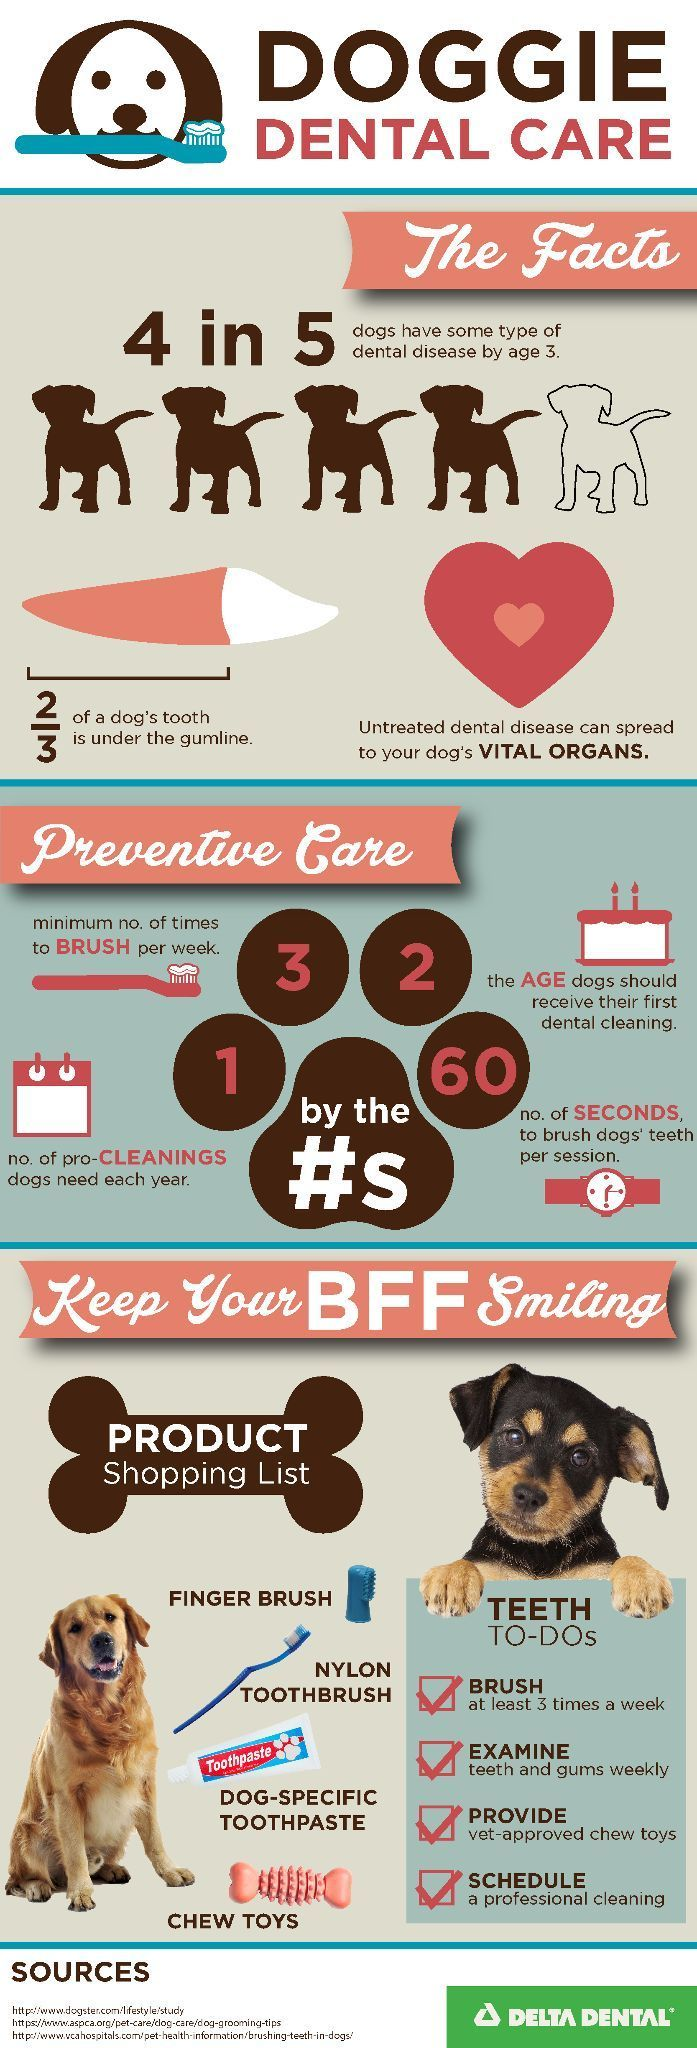 No More Chewing: Dog-Training Tips for Chompers advise